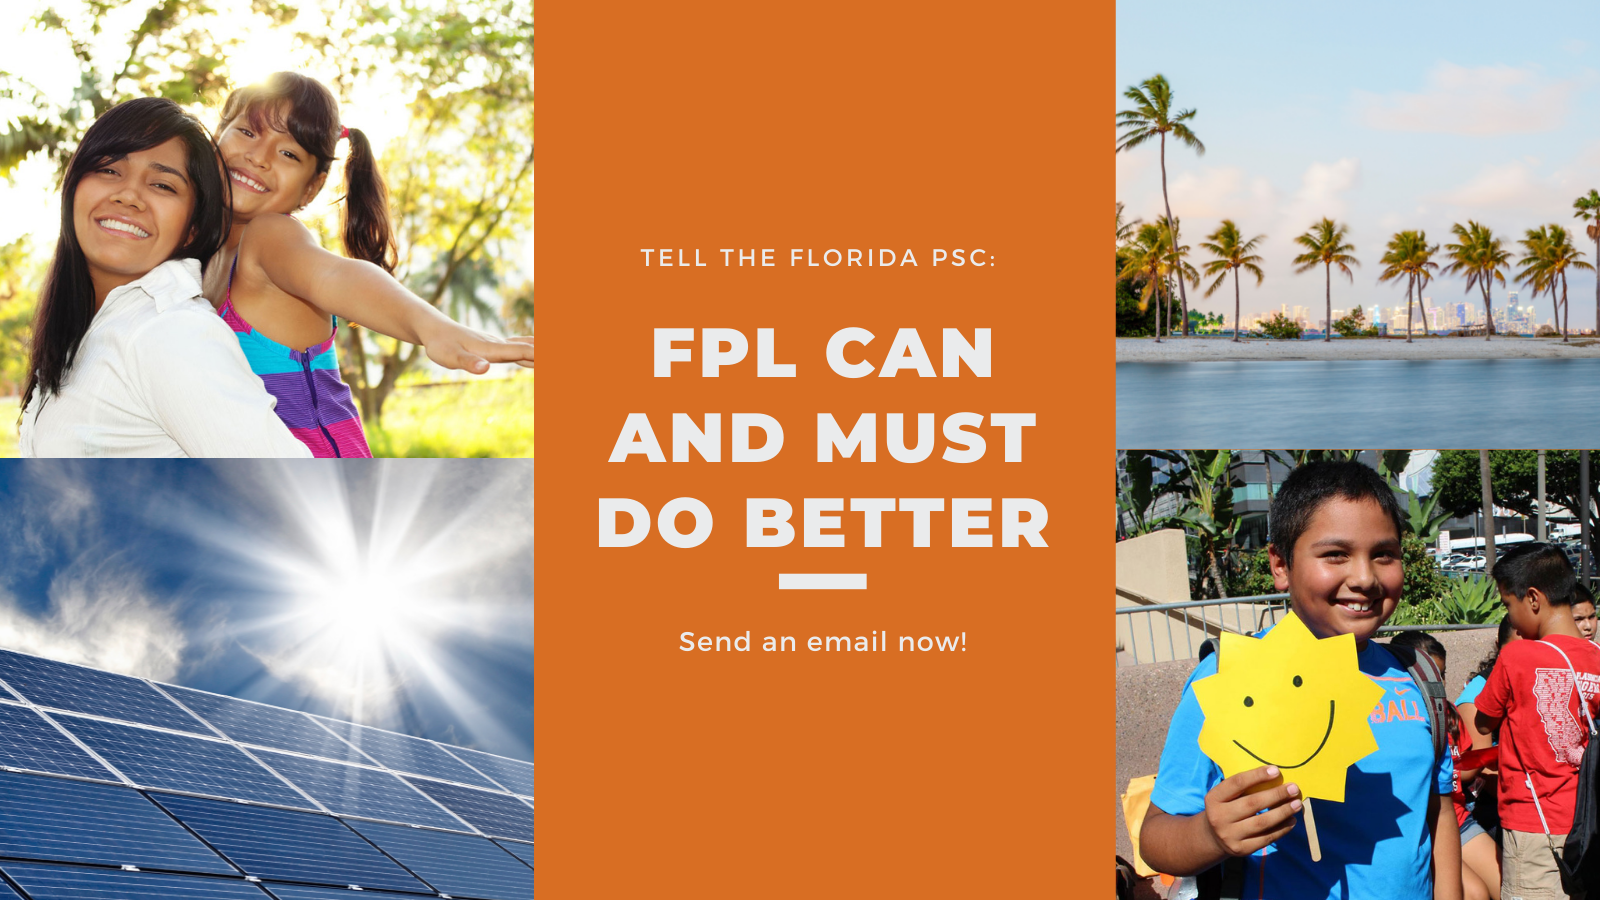 Florida Power & Light proposes a massive rate hike while shutting off the lights for vulnerable customers